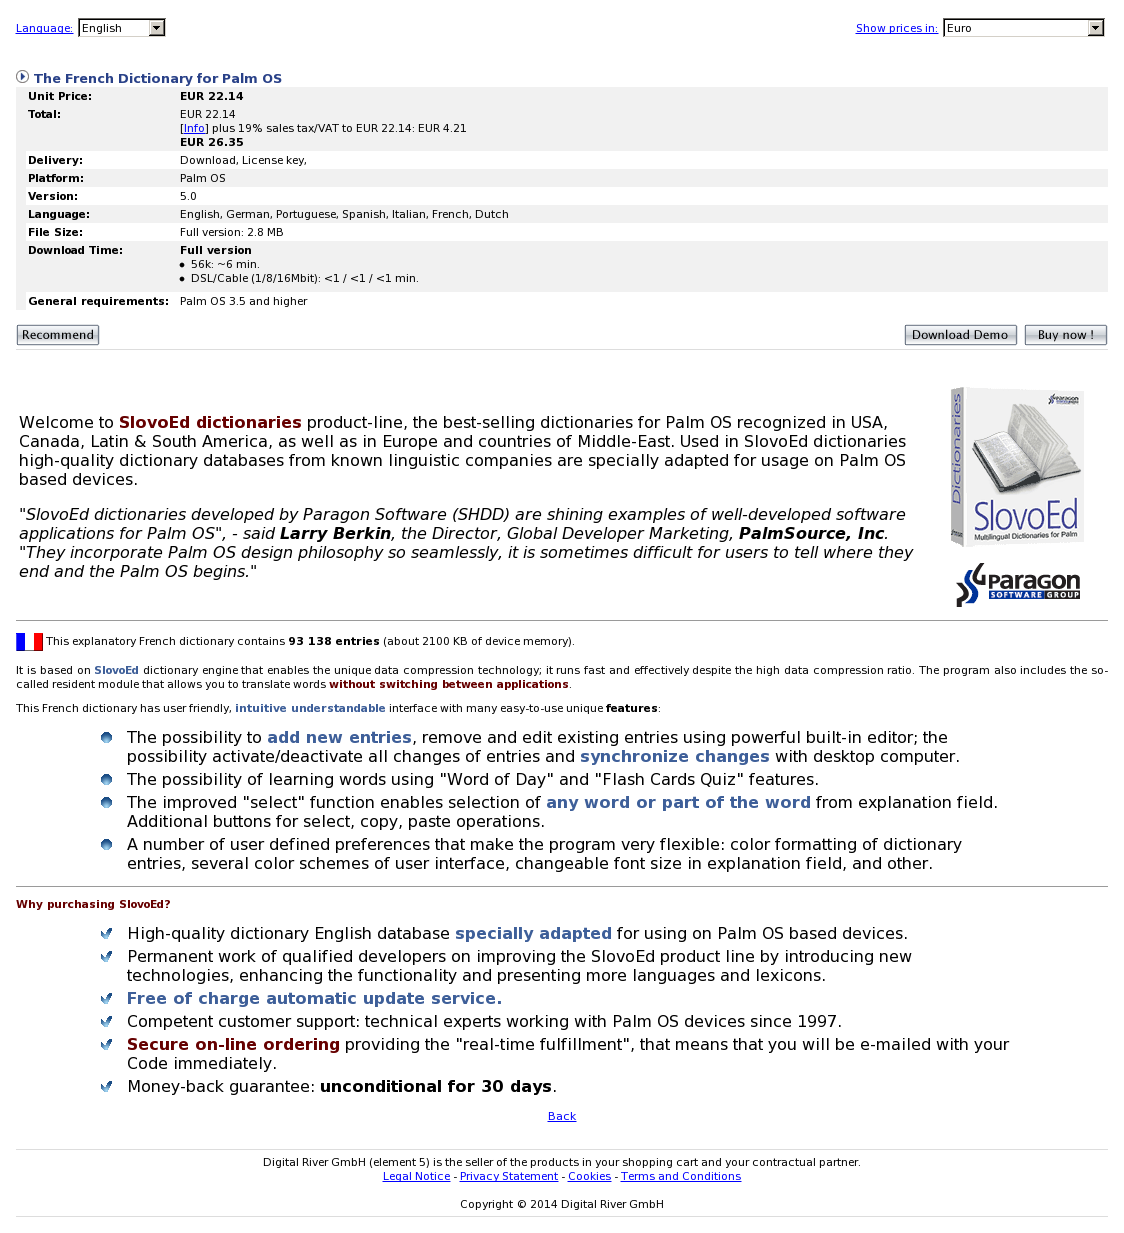 The French Dictionary for Palm OS